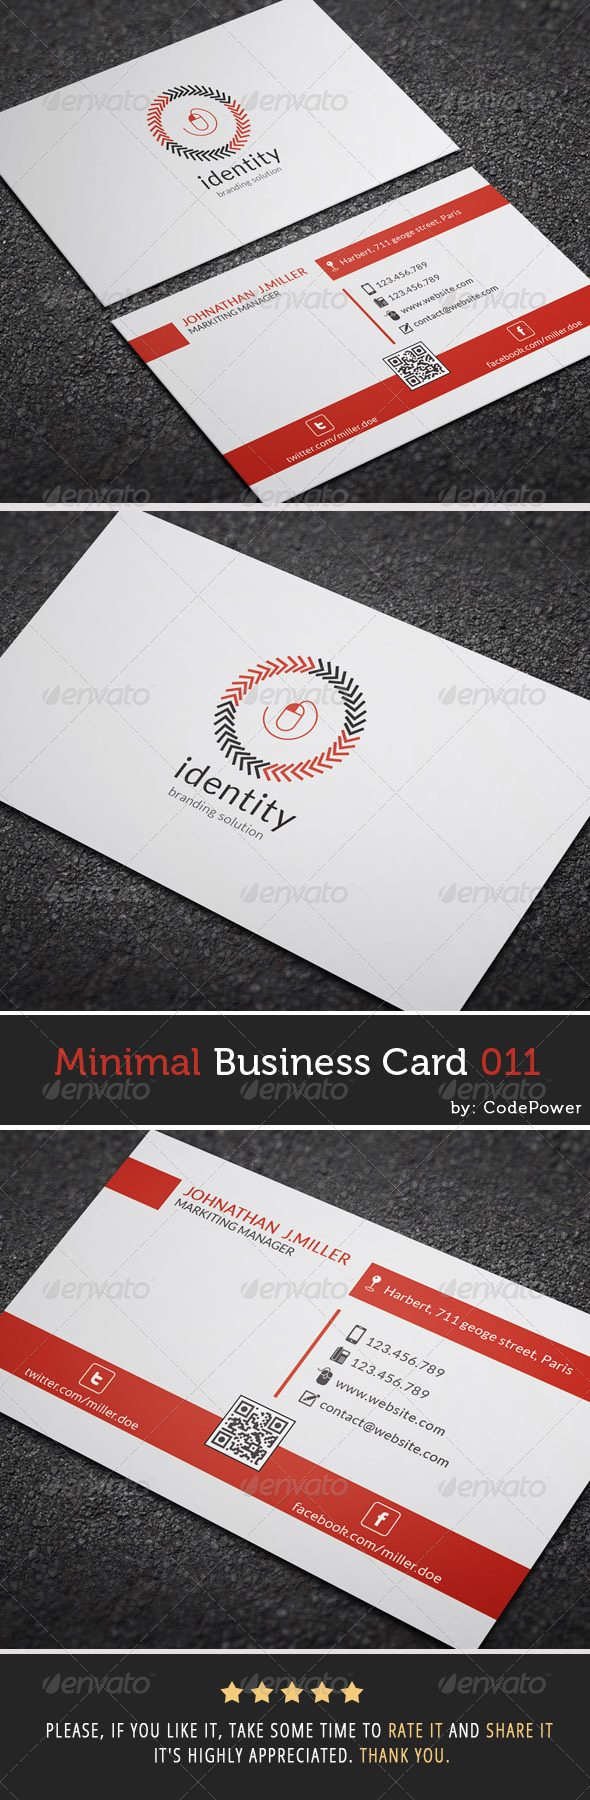 GraphicRiver Minimal Business Card 011 7384612